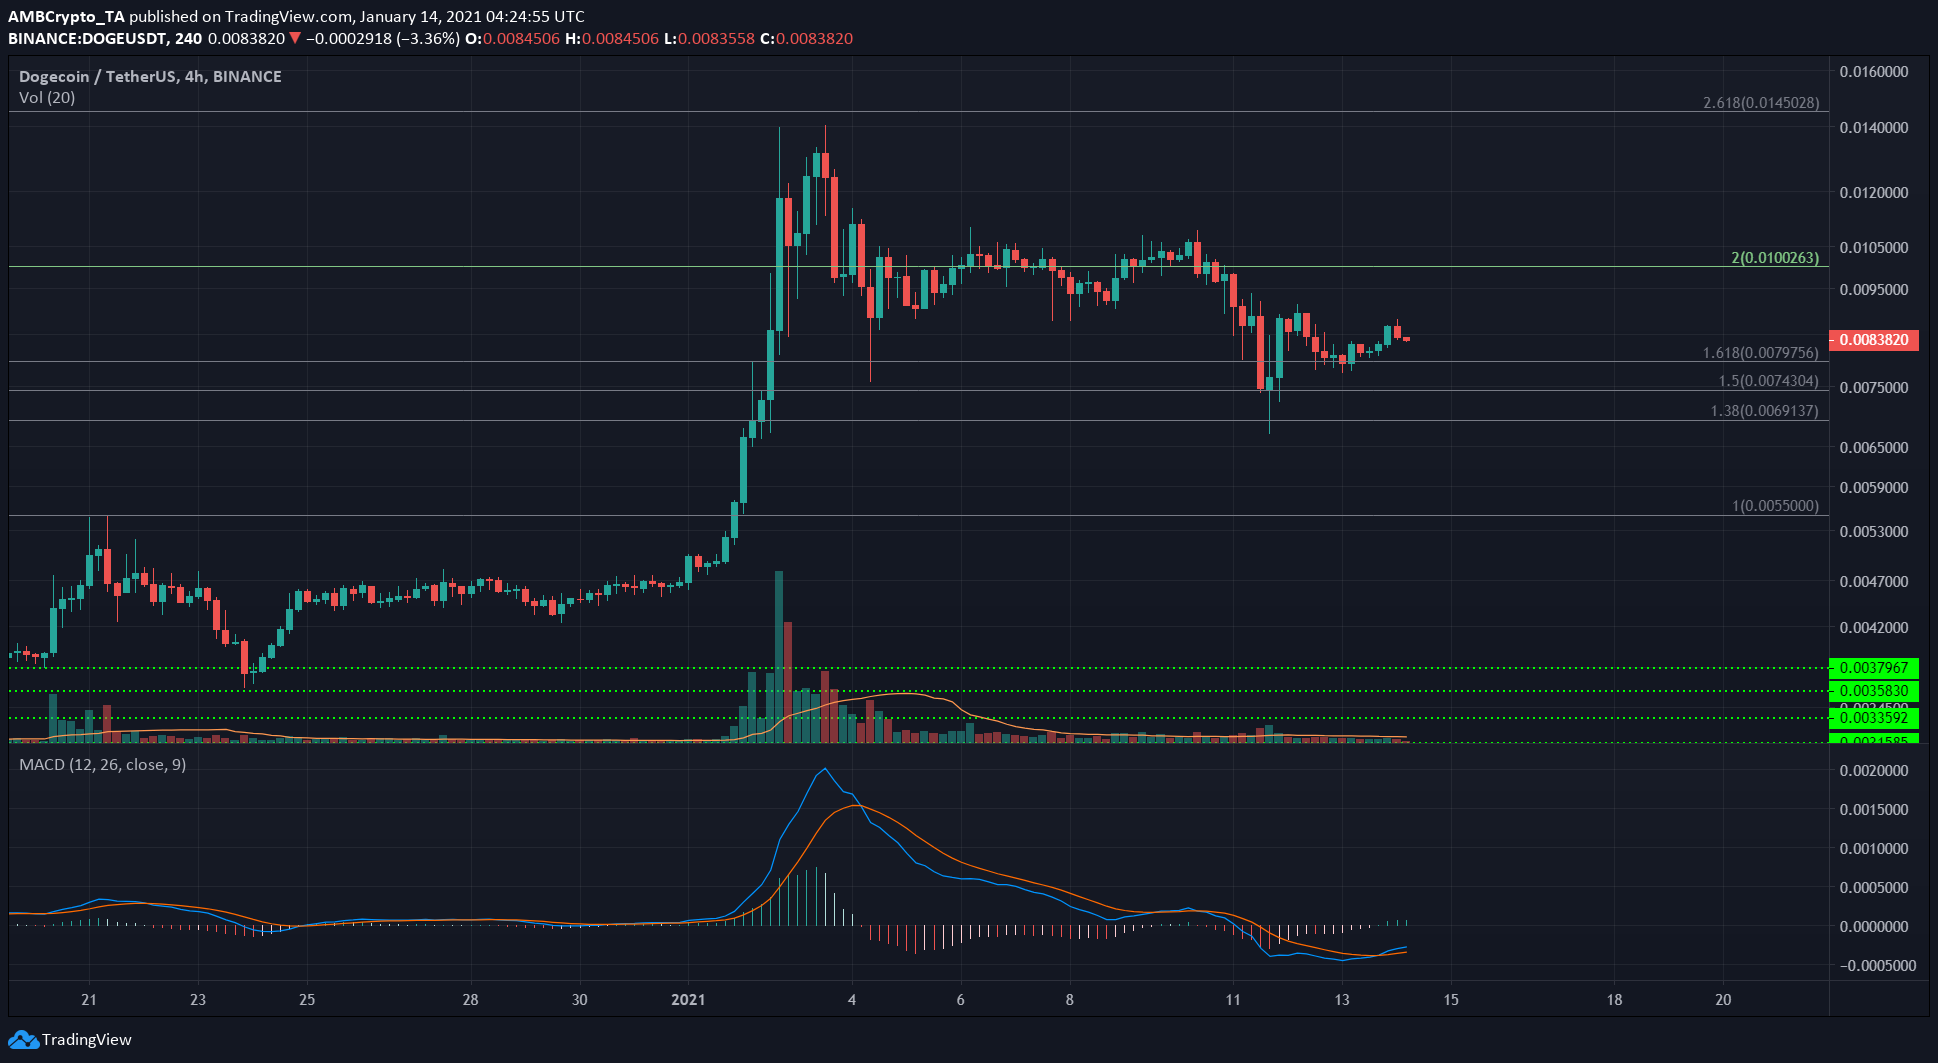 Ethereum, Dash, Dogecoin Price Analysis: 14 January